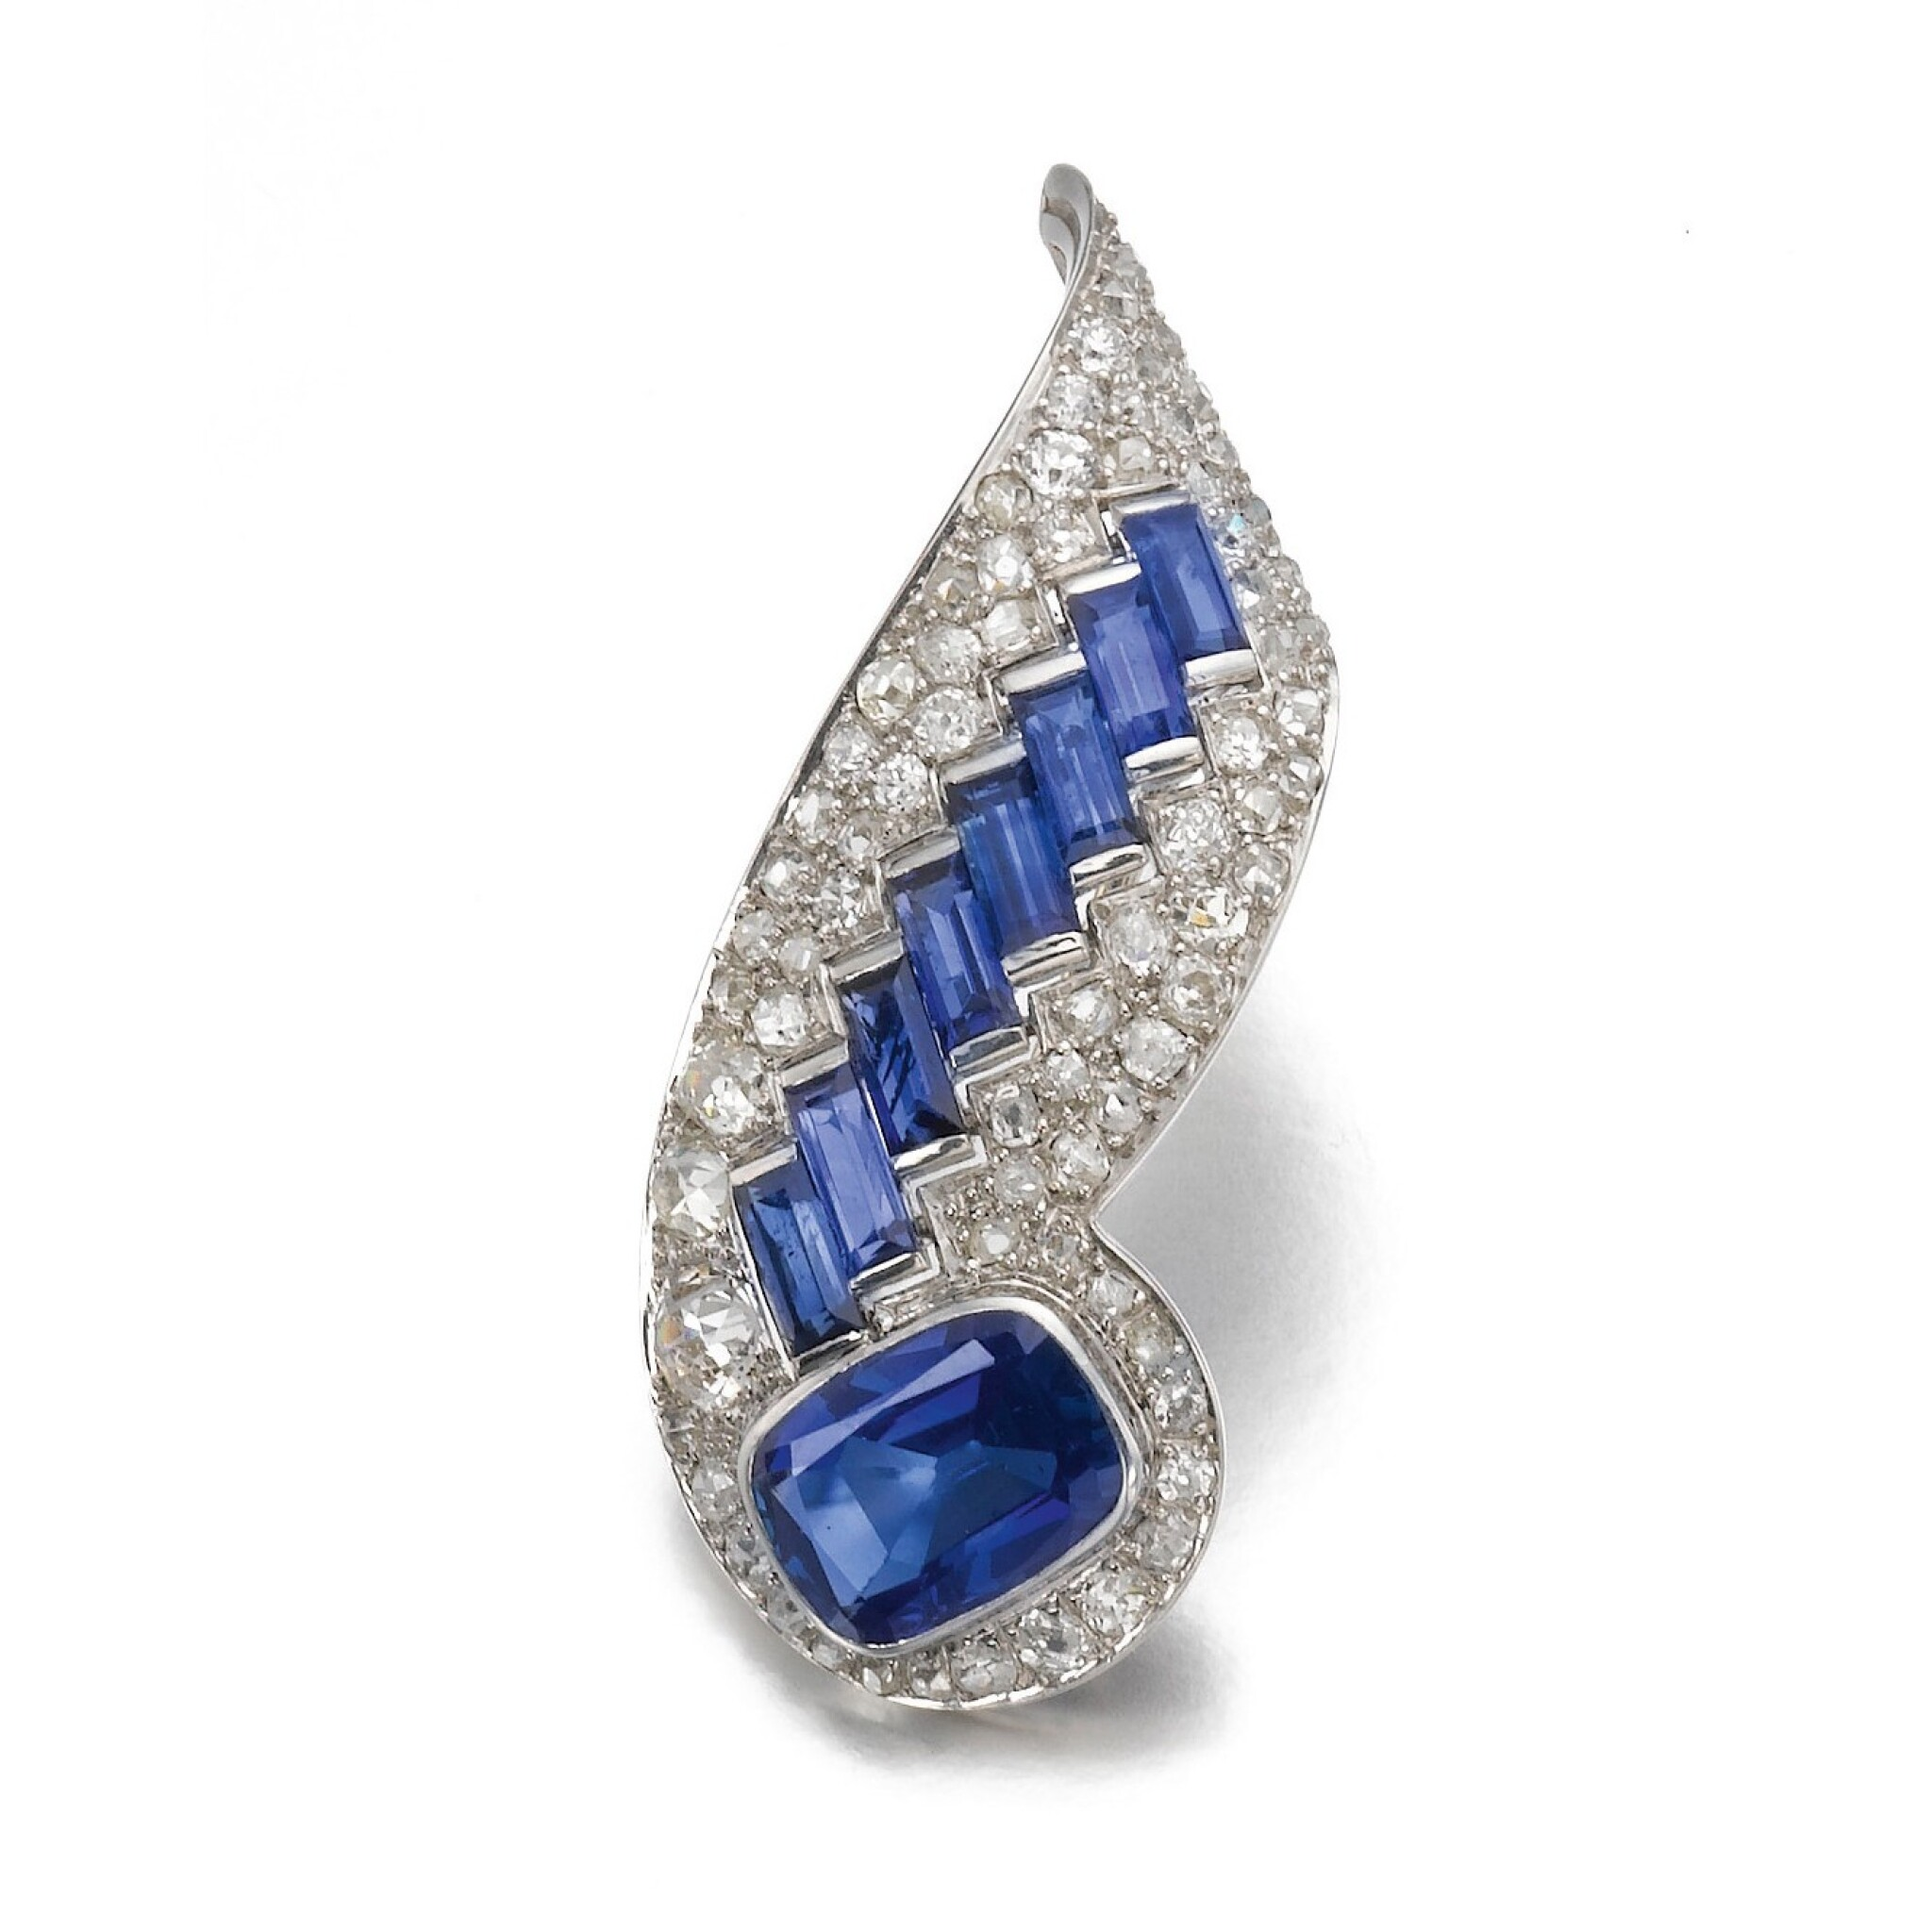 View full screen - View 1 of Lot 317. RENÉ BOIVIN   SAPPHIRE AND DIAMOND BROOCH, 1939.